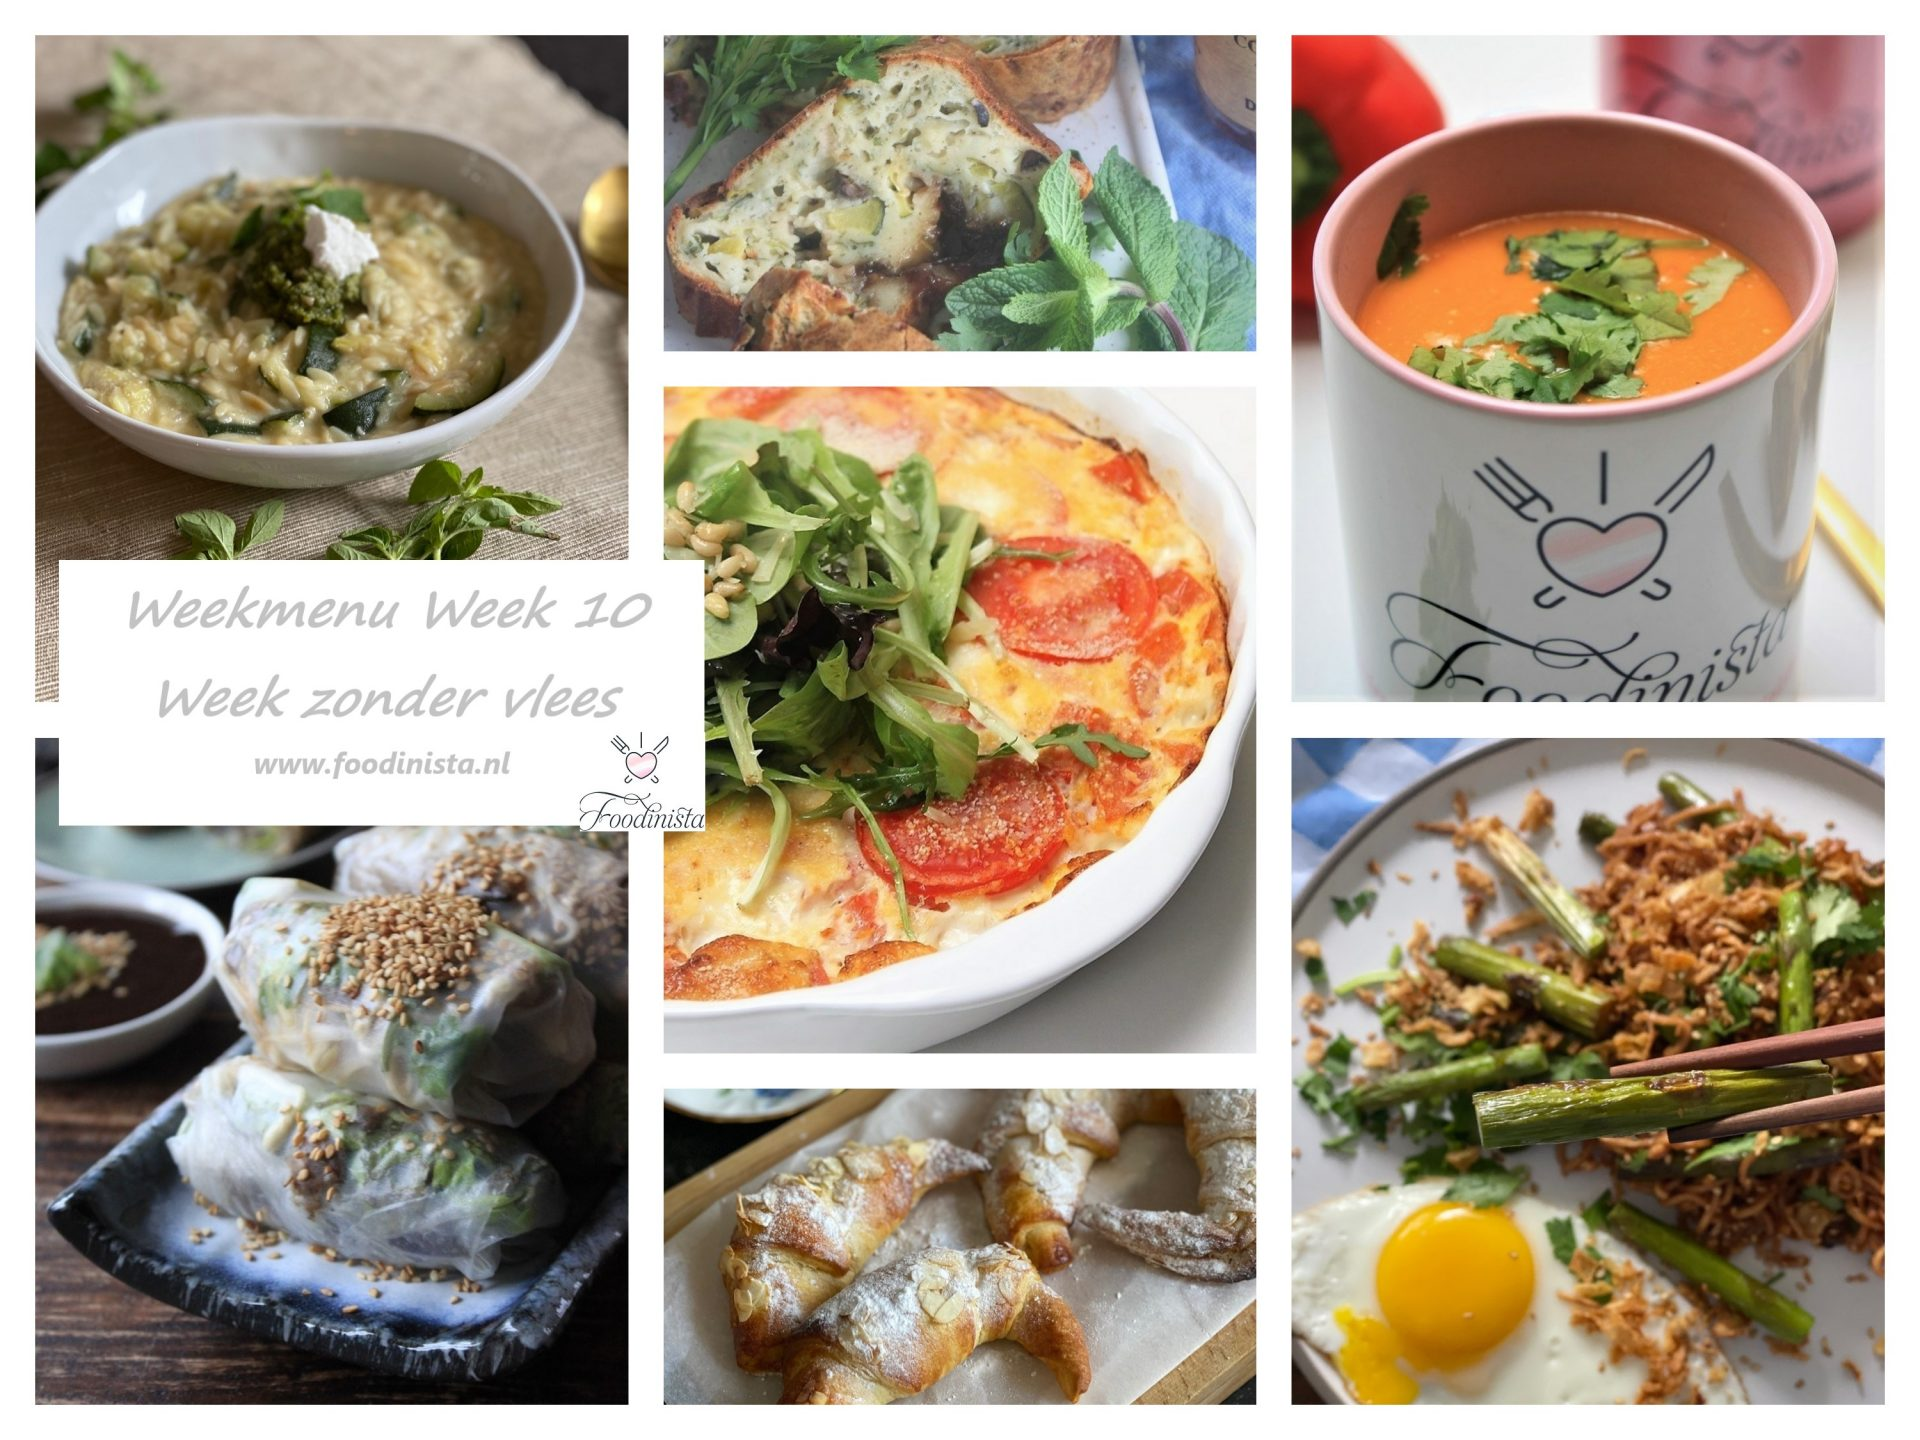 Week zonder vlees weekmenu - Winter weekmenu week 10